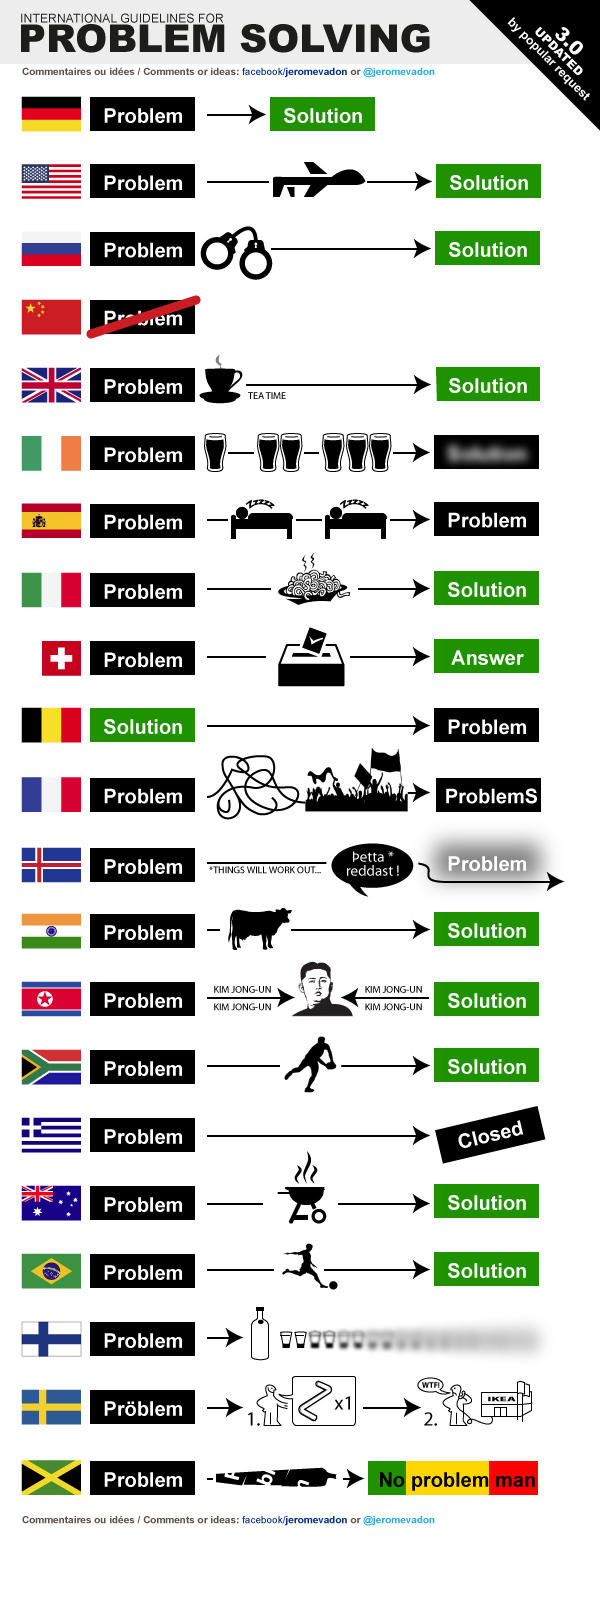 International guidlines for problem solving.